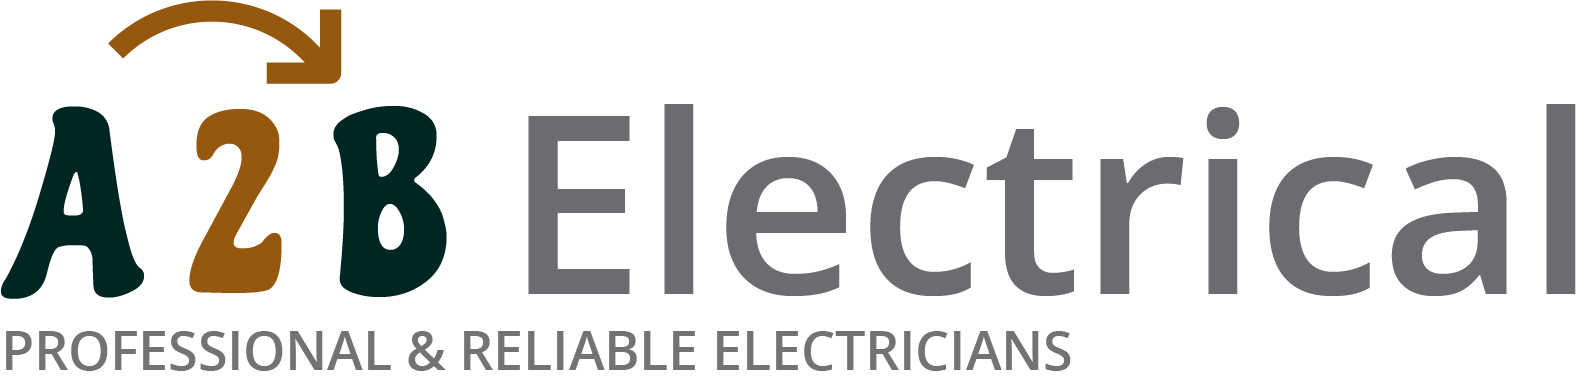 If you have electrical wiring problems in Parsons Green, we can provide an electrician to have a look for you.